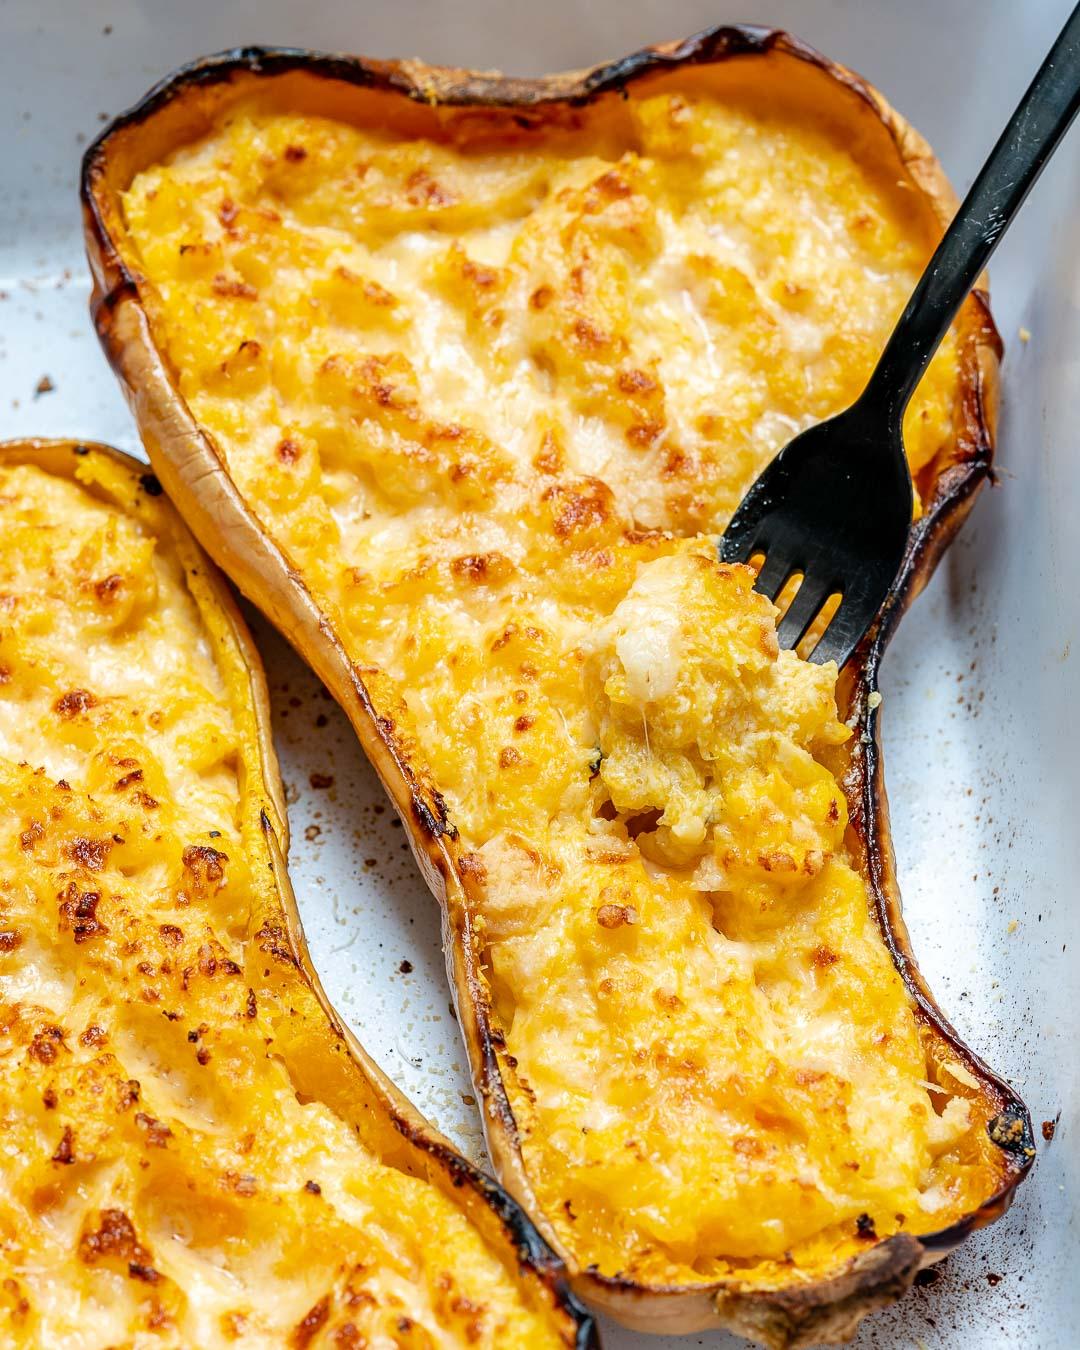 This Twice Baked Butternut Squash is a Winner!